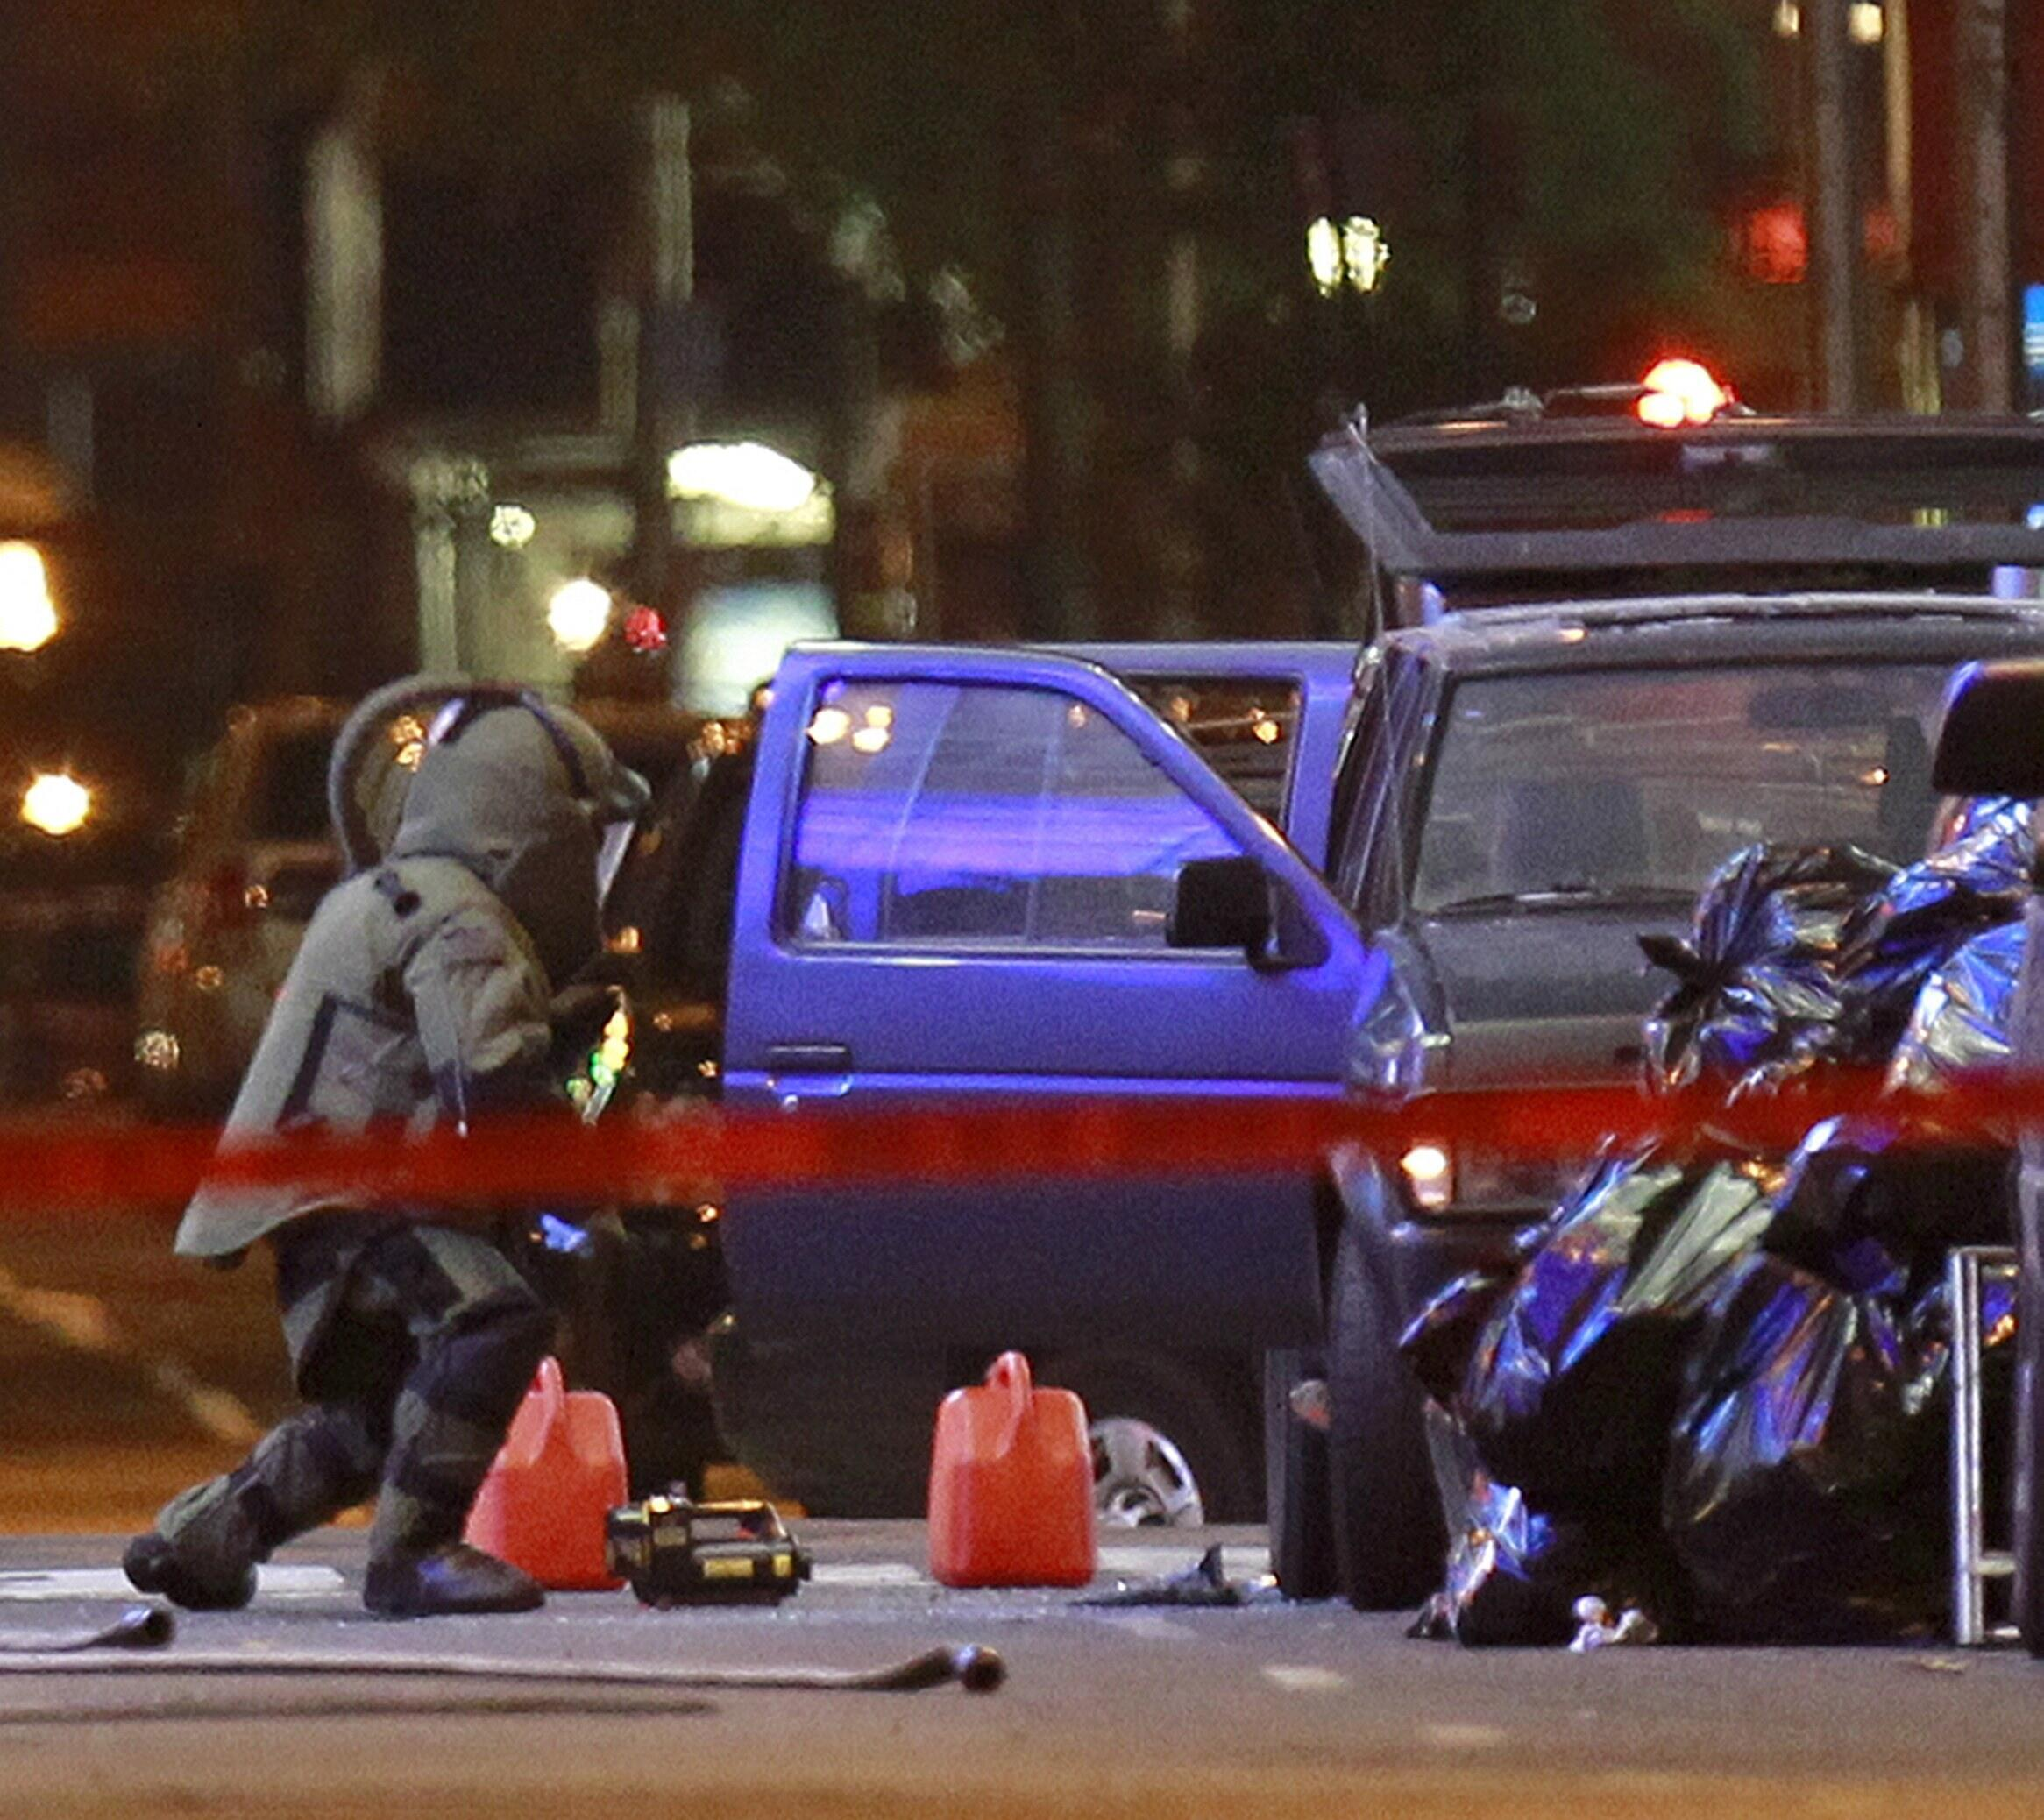 Bomb experts work on the Nissan Pathfinder in Times Square